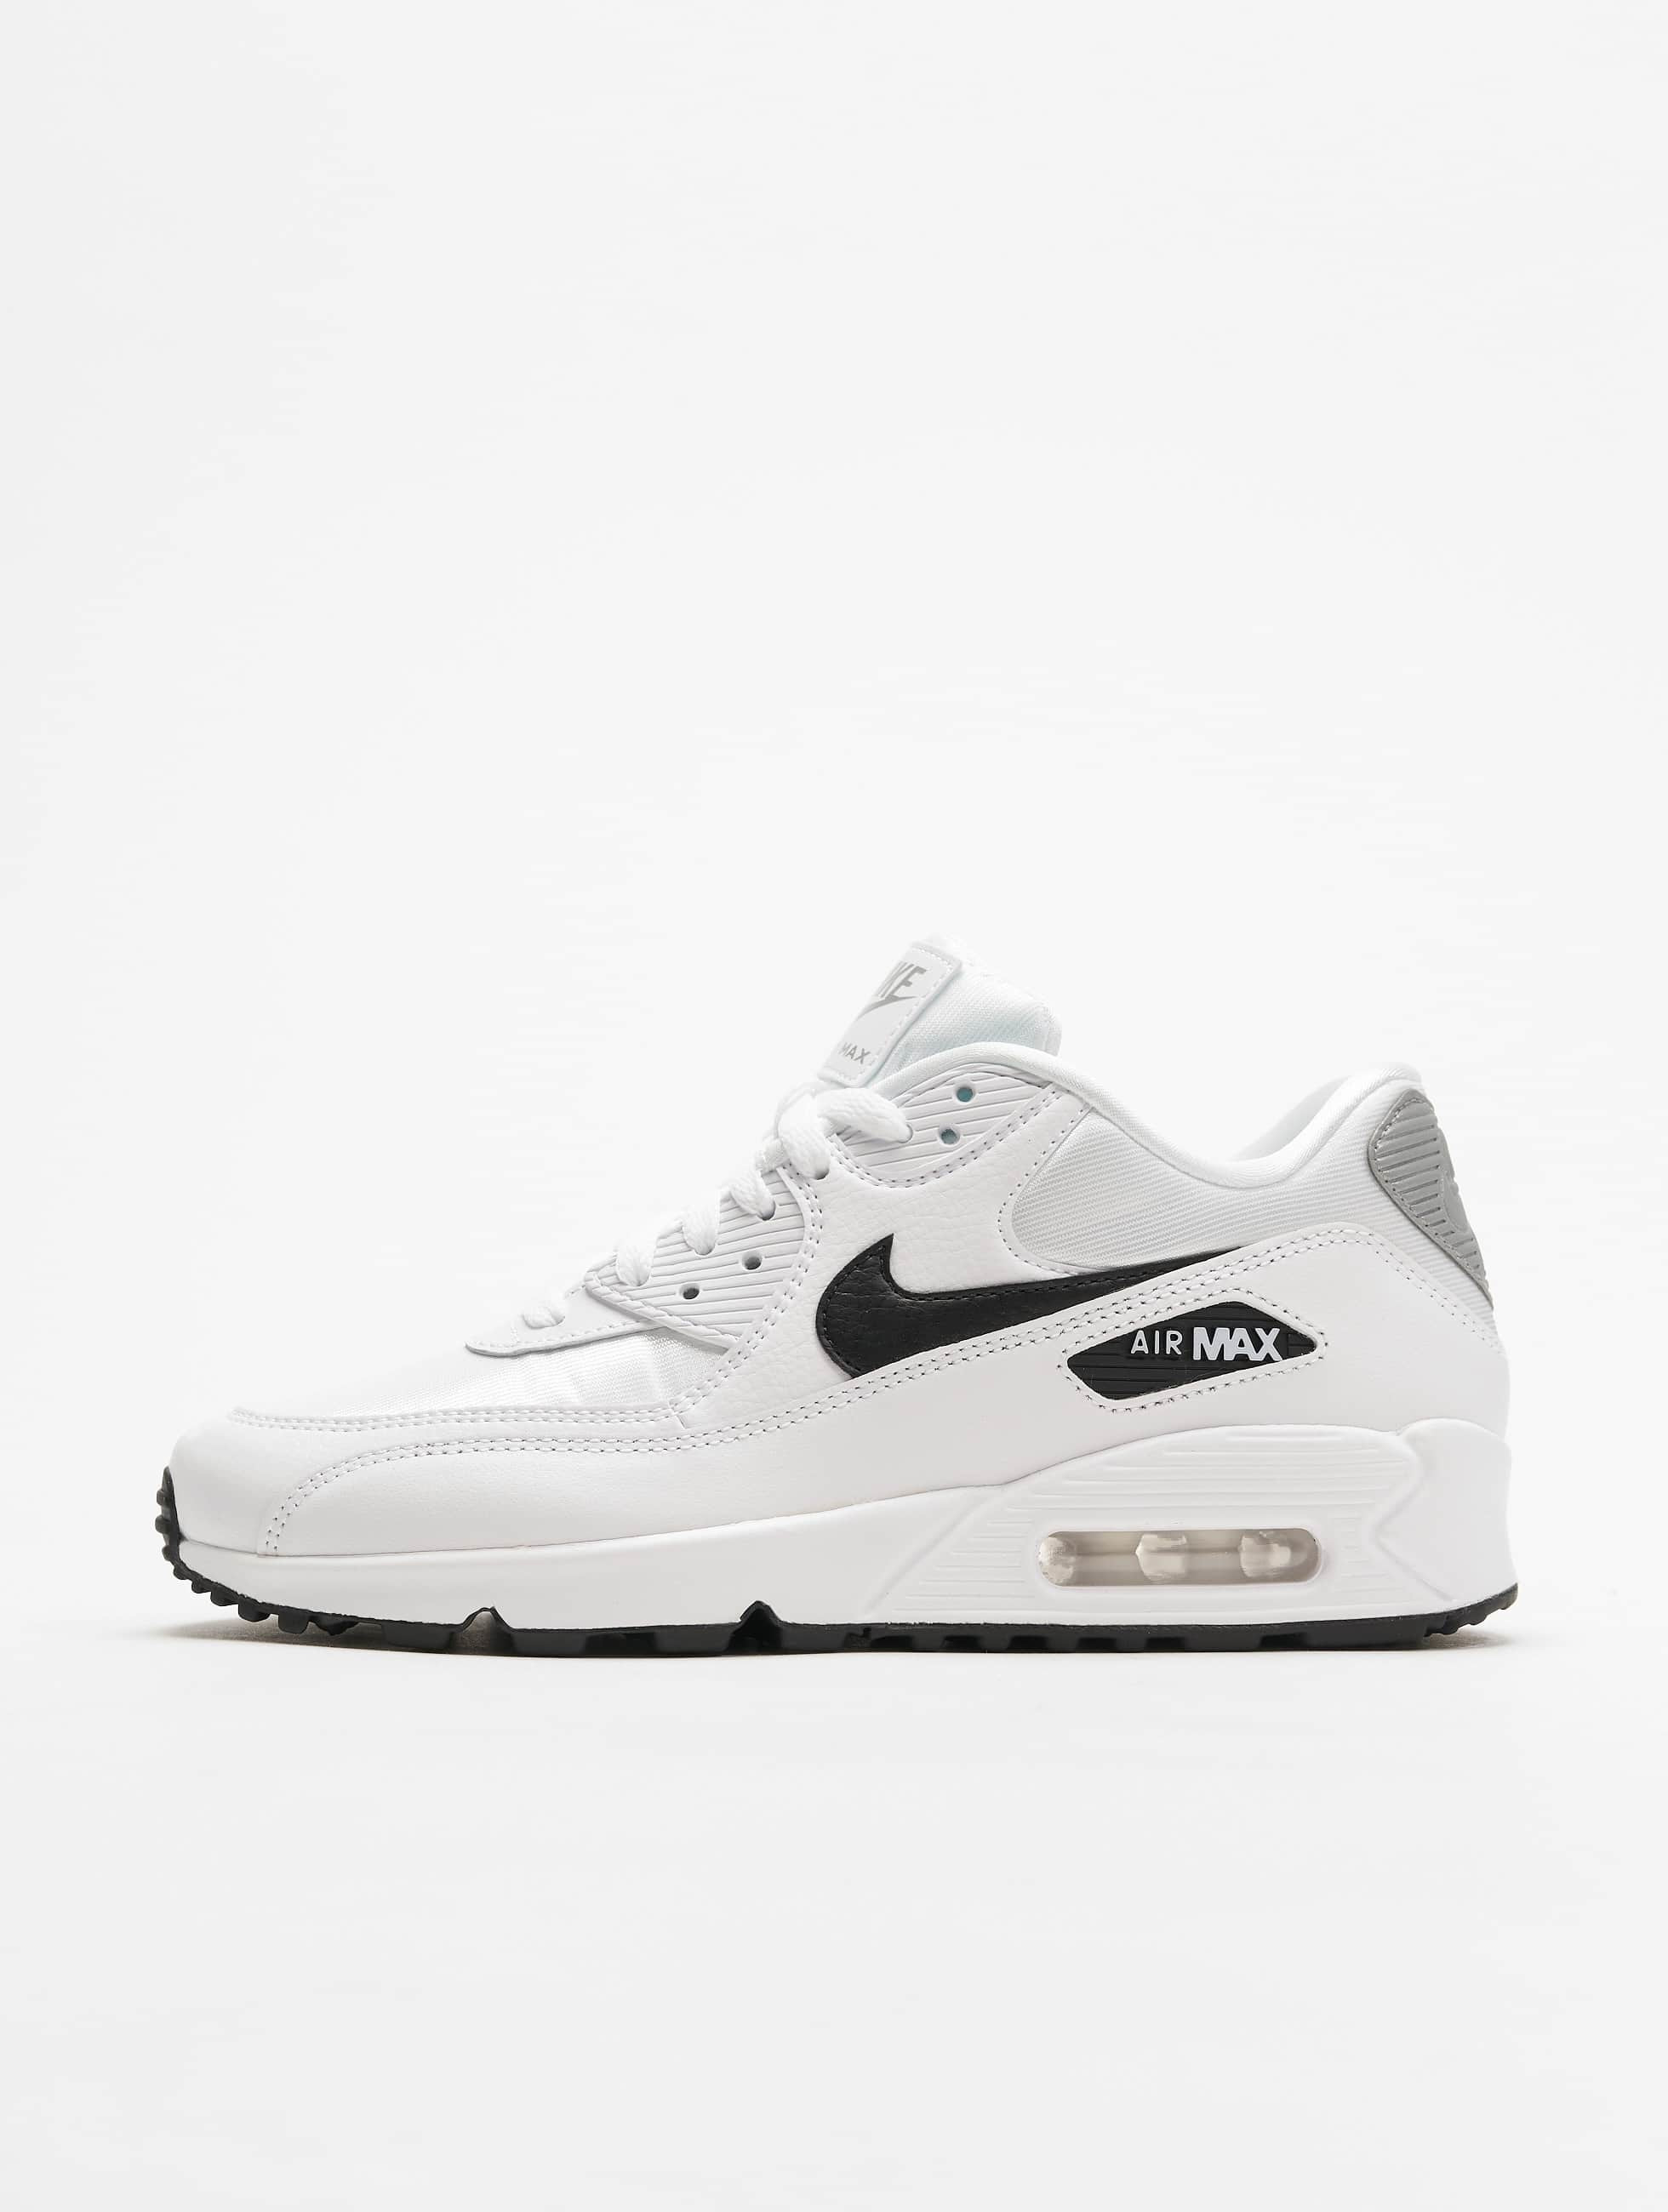 3d4e1bb2a59 Nike schoen / sneaker Air Max in wit 581516